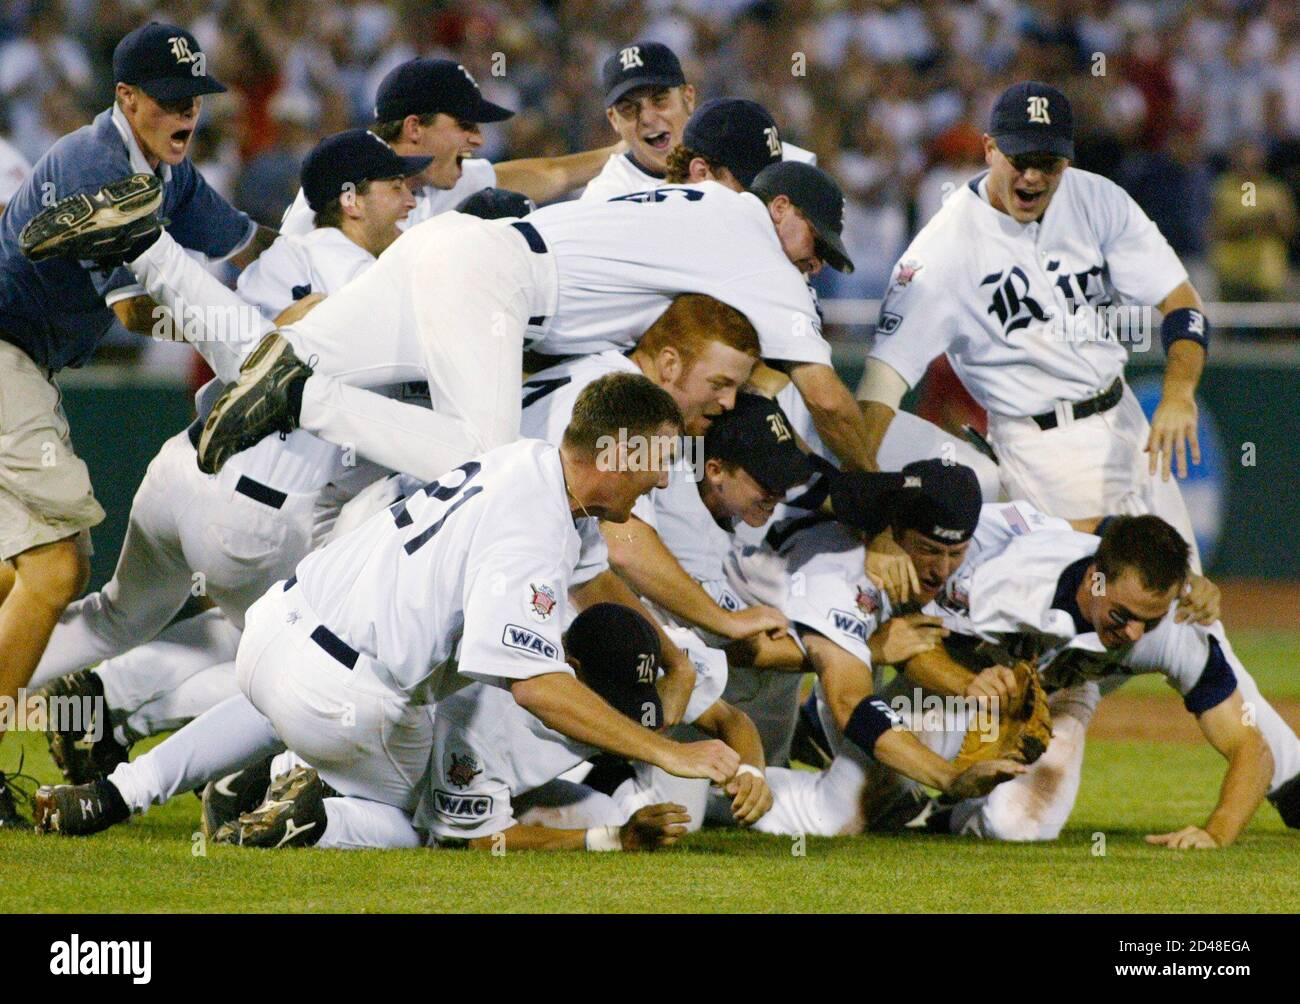 Rice Owls players celebrate winning the College Baseball World Series, beating Stanford two games to one in Omaha, Nebraska June 23, 2003. The 14-2 victory gave Rice their first national championship in any NCAA team sport. At left is Rice pitcher Philip Humber (21), who pitched a complete game. REUTERS/Rick Wilking  RTW/SV Stock Photo